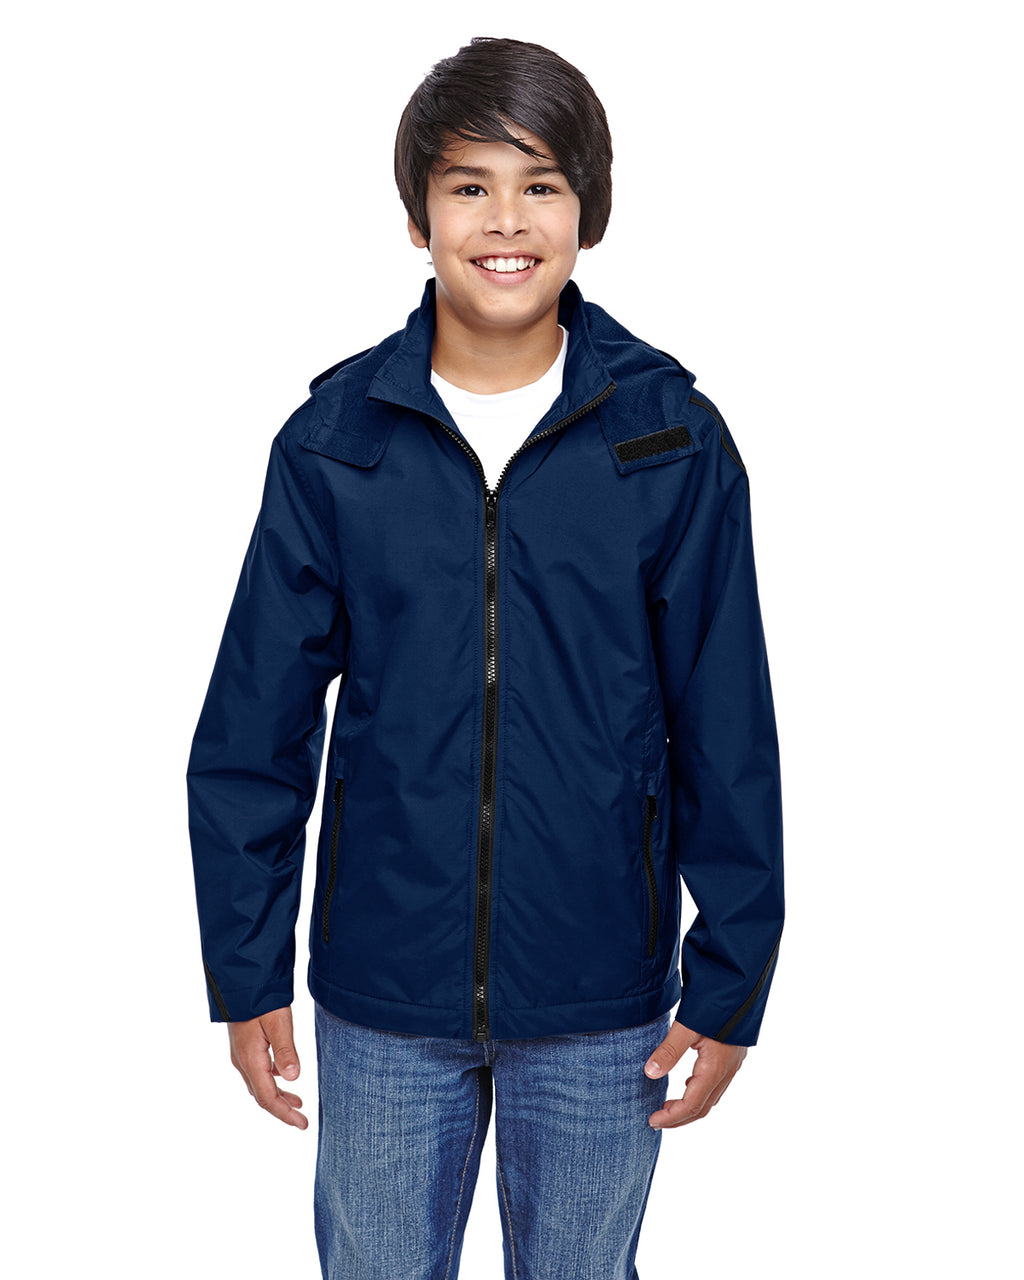 TT72Y - Youth Conquest Jacket with Fleece Lining